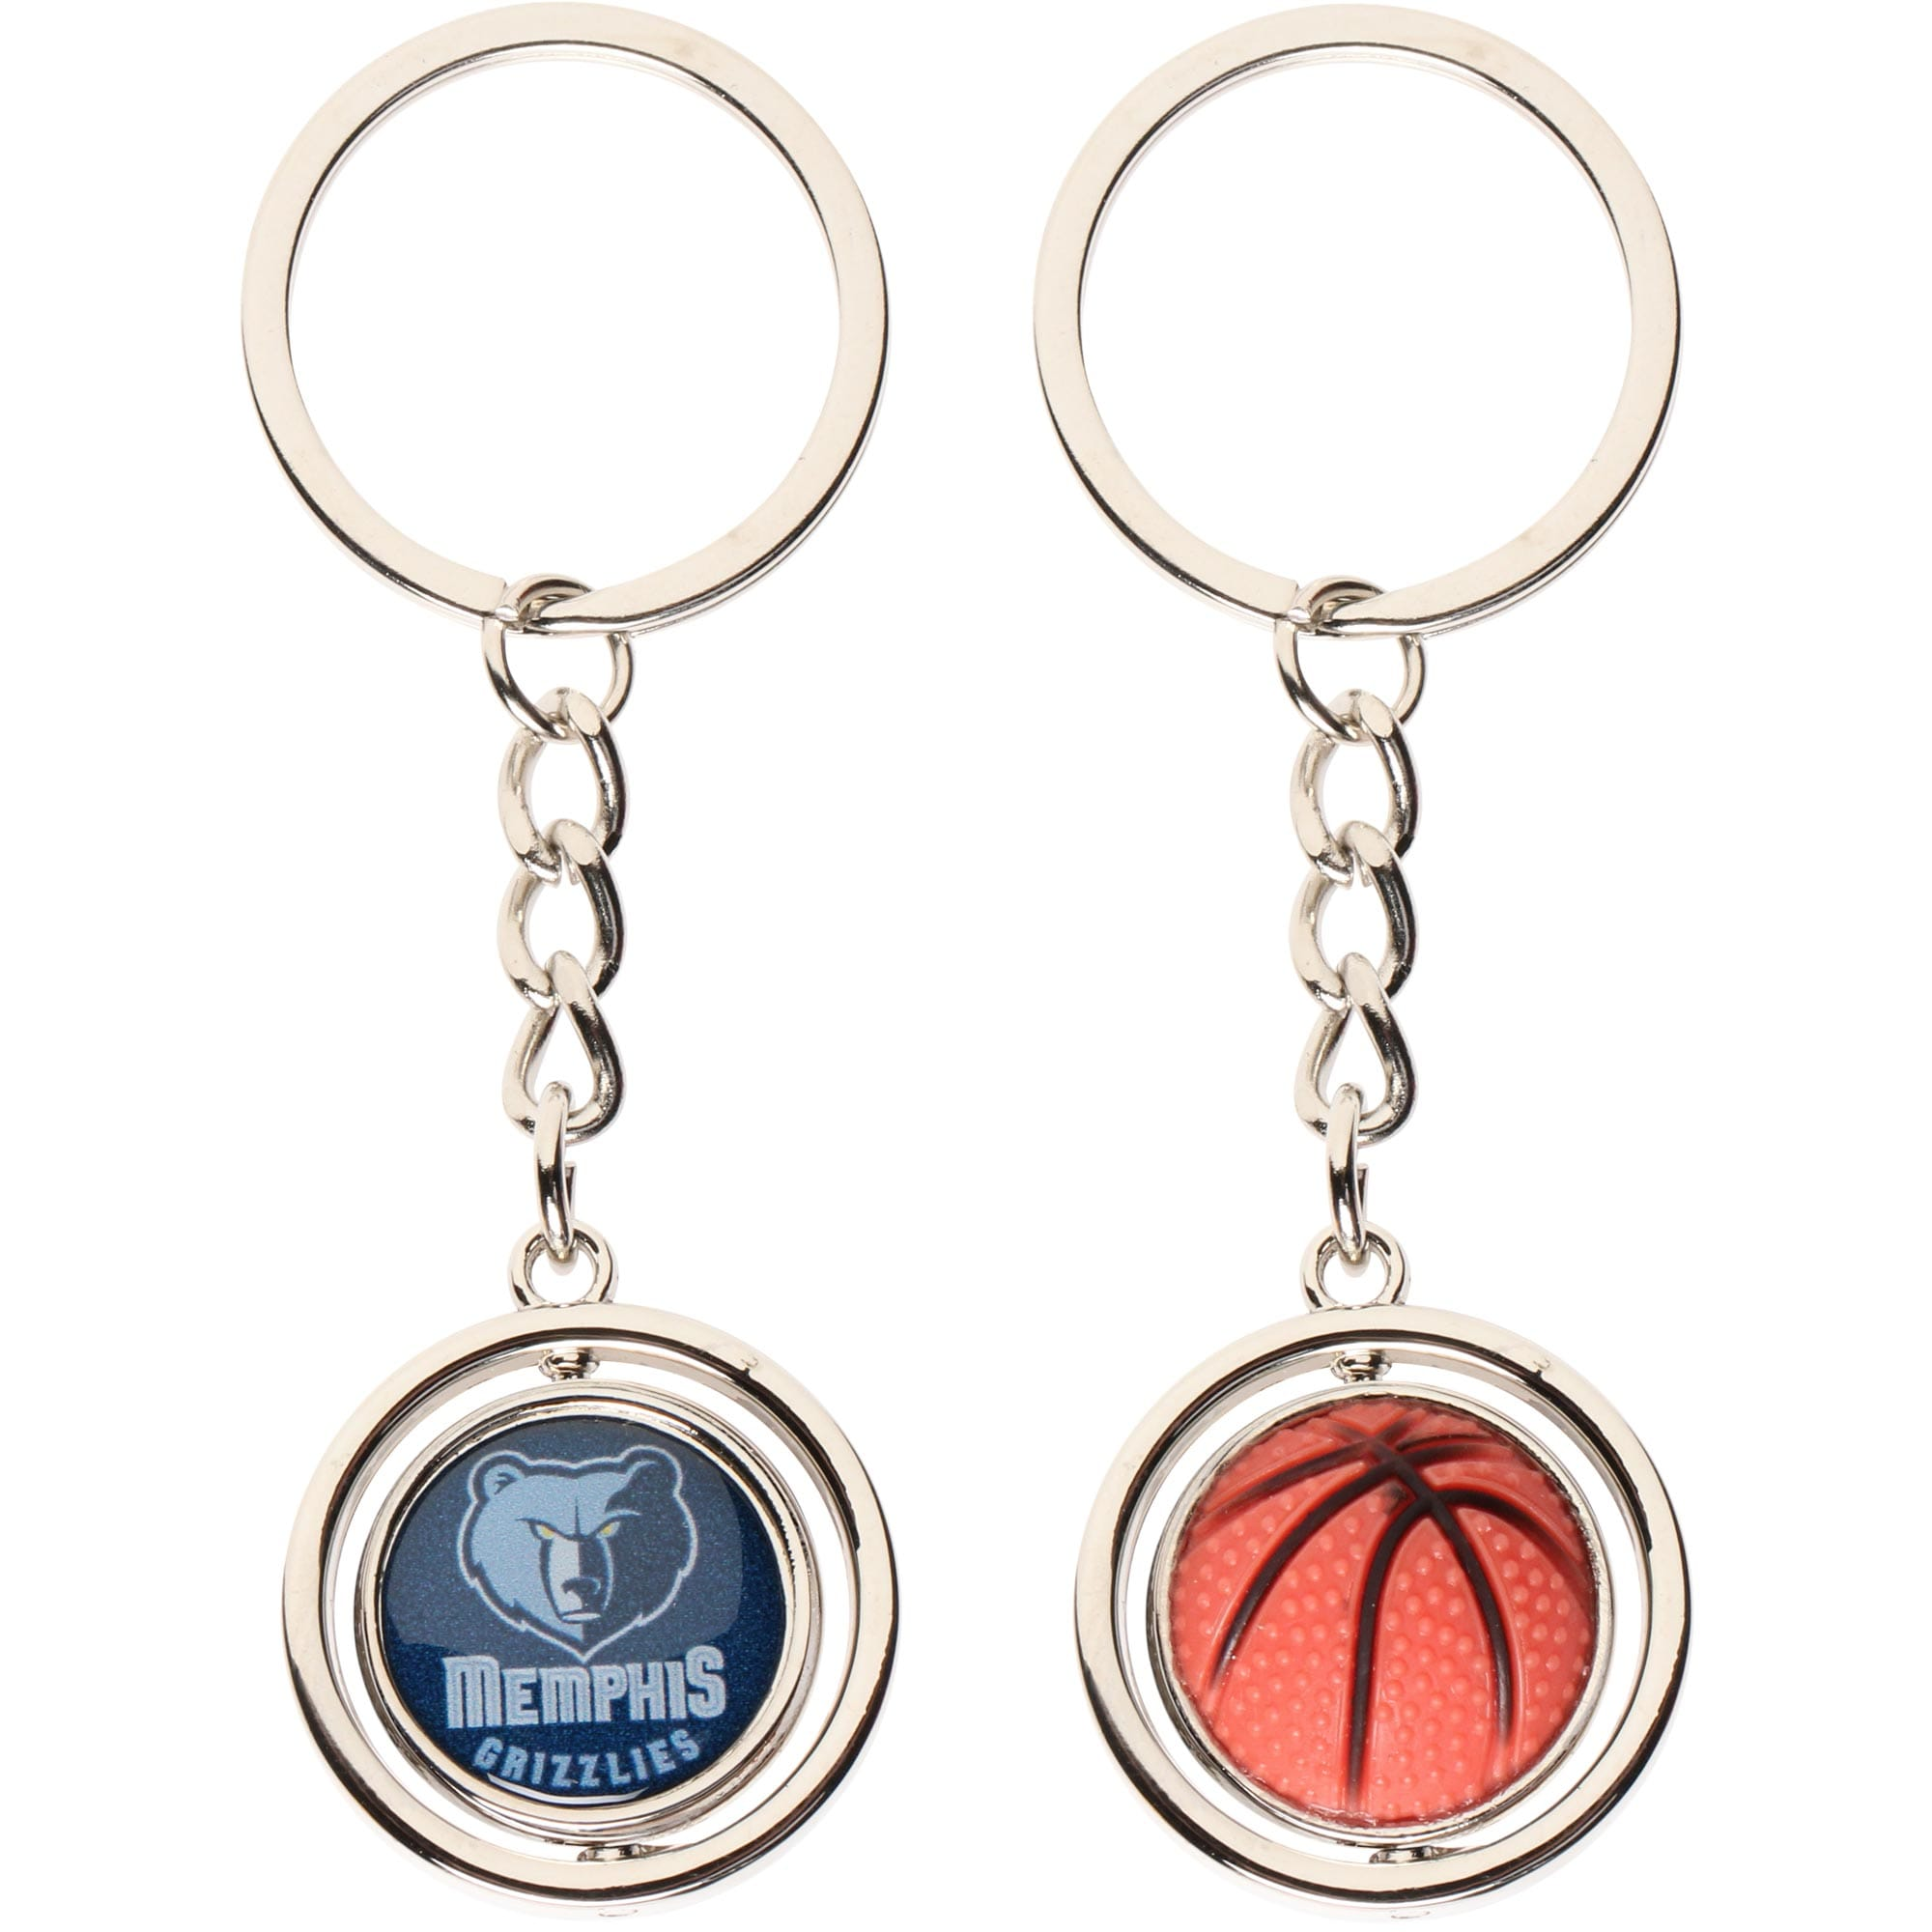 Memphis Grizzlies Spinning Basketball Keychain